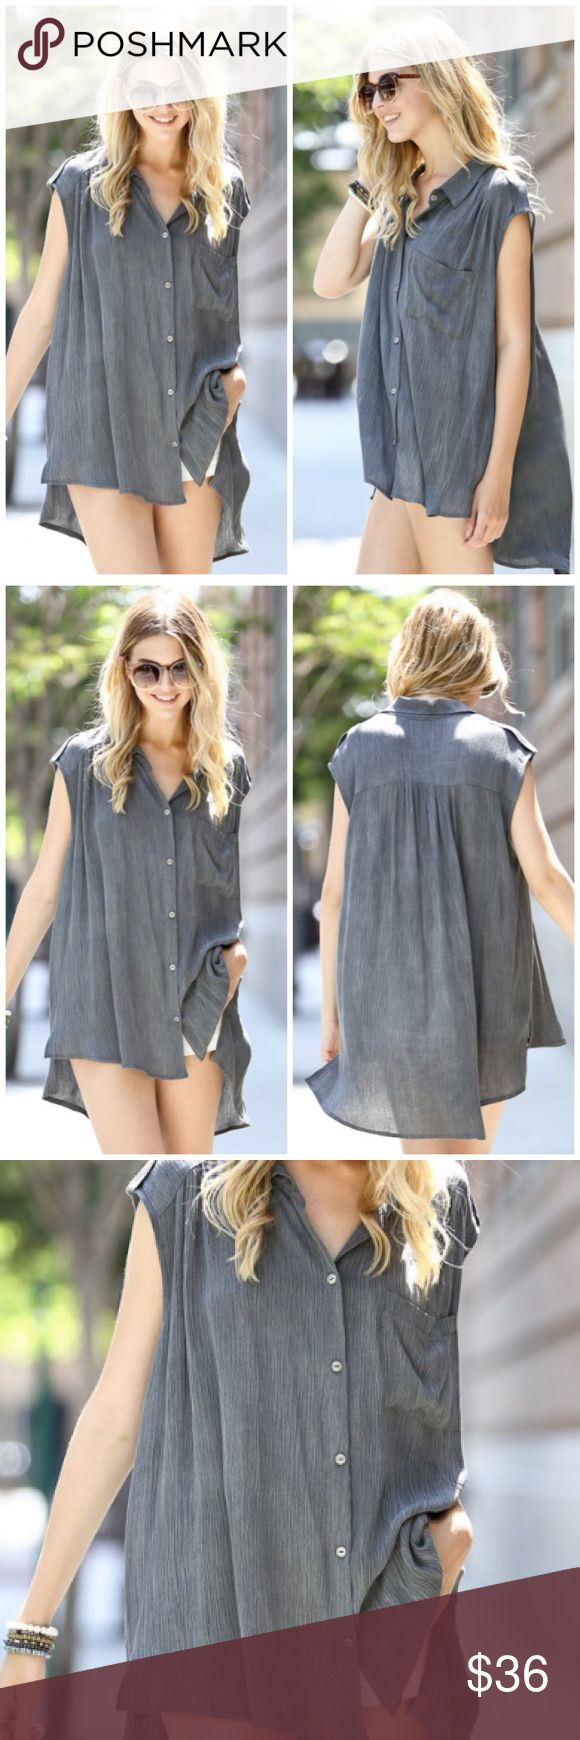 1 HOUR SALEBlack Gray Sleeveless Tunic Top Black Gray sleeveless tunic top featuring V neckline and button down. Loose fitting perfect to pair with jeans, leggings or shorts. Marled 100% Rayon. MADE IN USA Bchic Tops